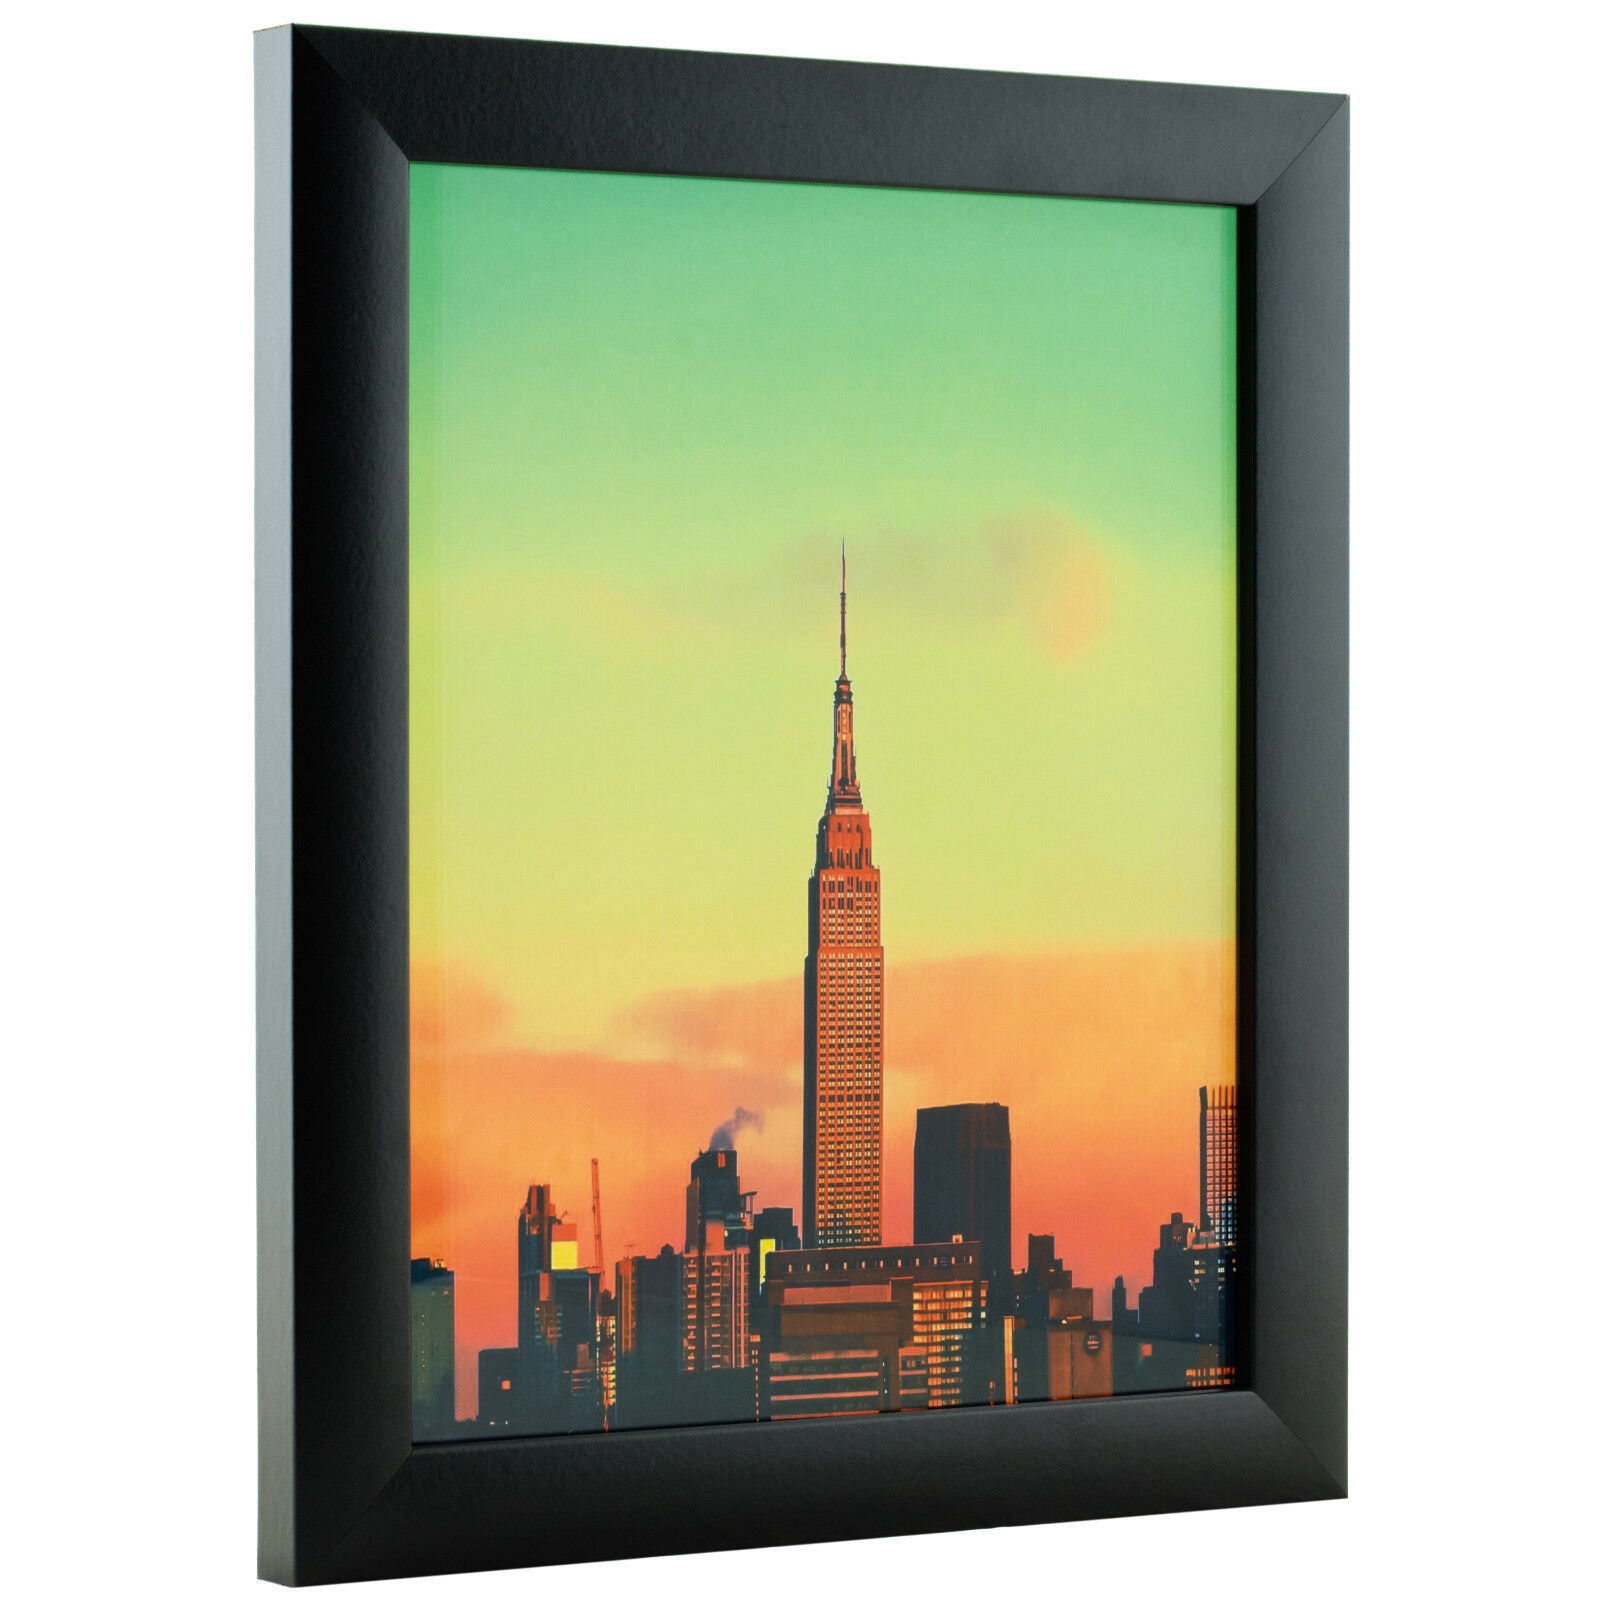 Craig frames 1wb3bk contemporary black picture frame custom sizes picture 1 of 11 jeuxipadfo Gallery